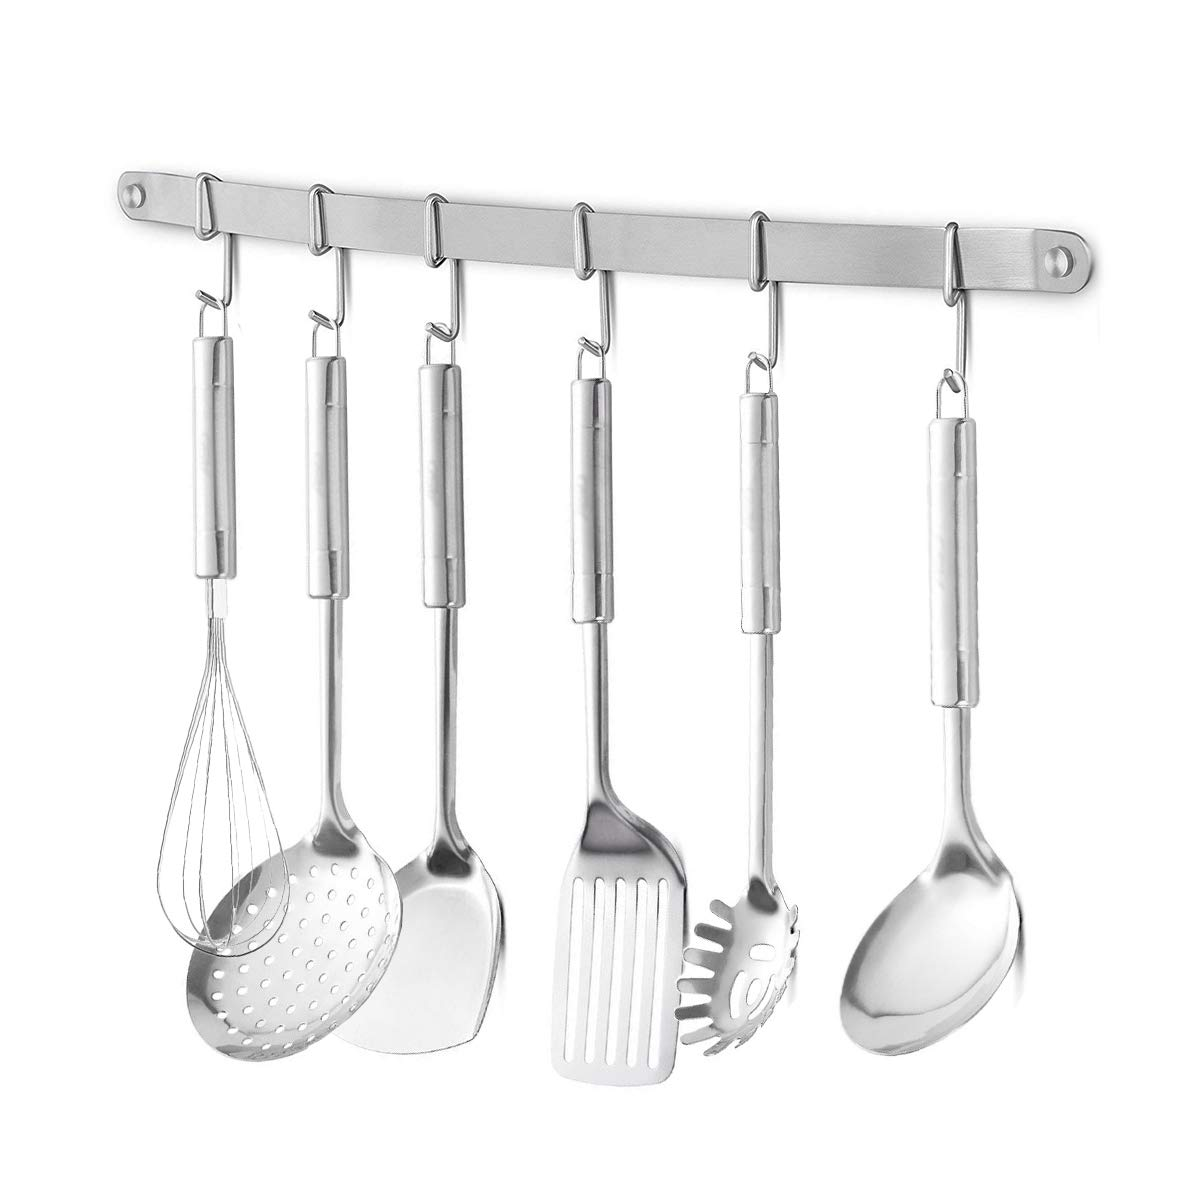 eForwish Stainless Steel Kitchen Utensil Racks Holder Hanging Rail Organize Pots Pans Kitchen Knife Gadgets On Wall Mounted Hanger Bar Rail Under Cabinet Shelf (6 Hook,17'') by eForwish